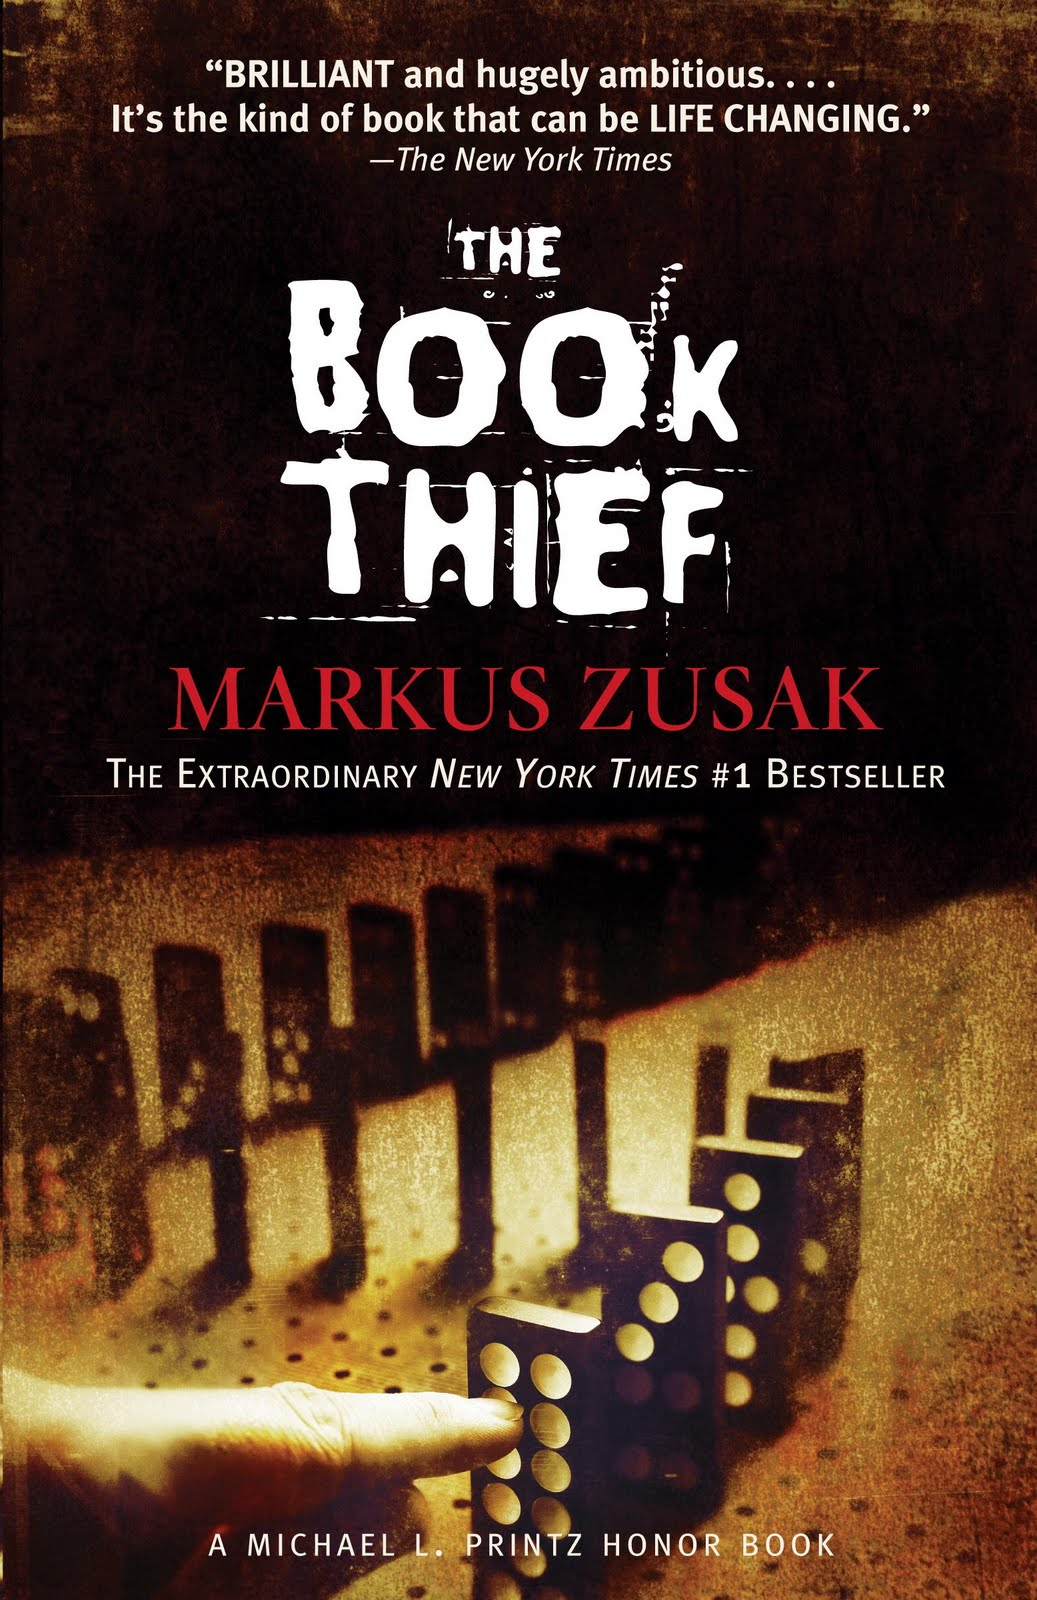 http://2.bp.blogspot.com/-NxN_RyuNmT0/Th-x7WLxMeI/AAAAAAAAA60/hNHIjrR054w/s1600/the-book-thief.jpg